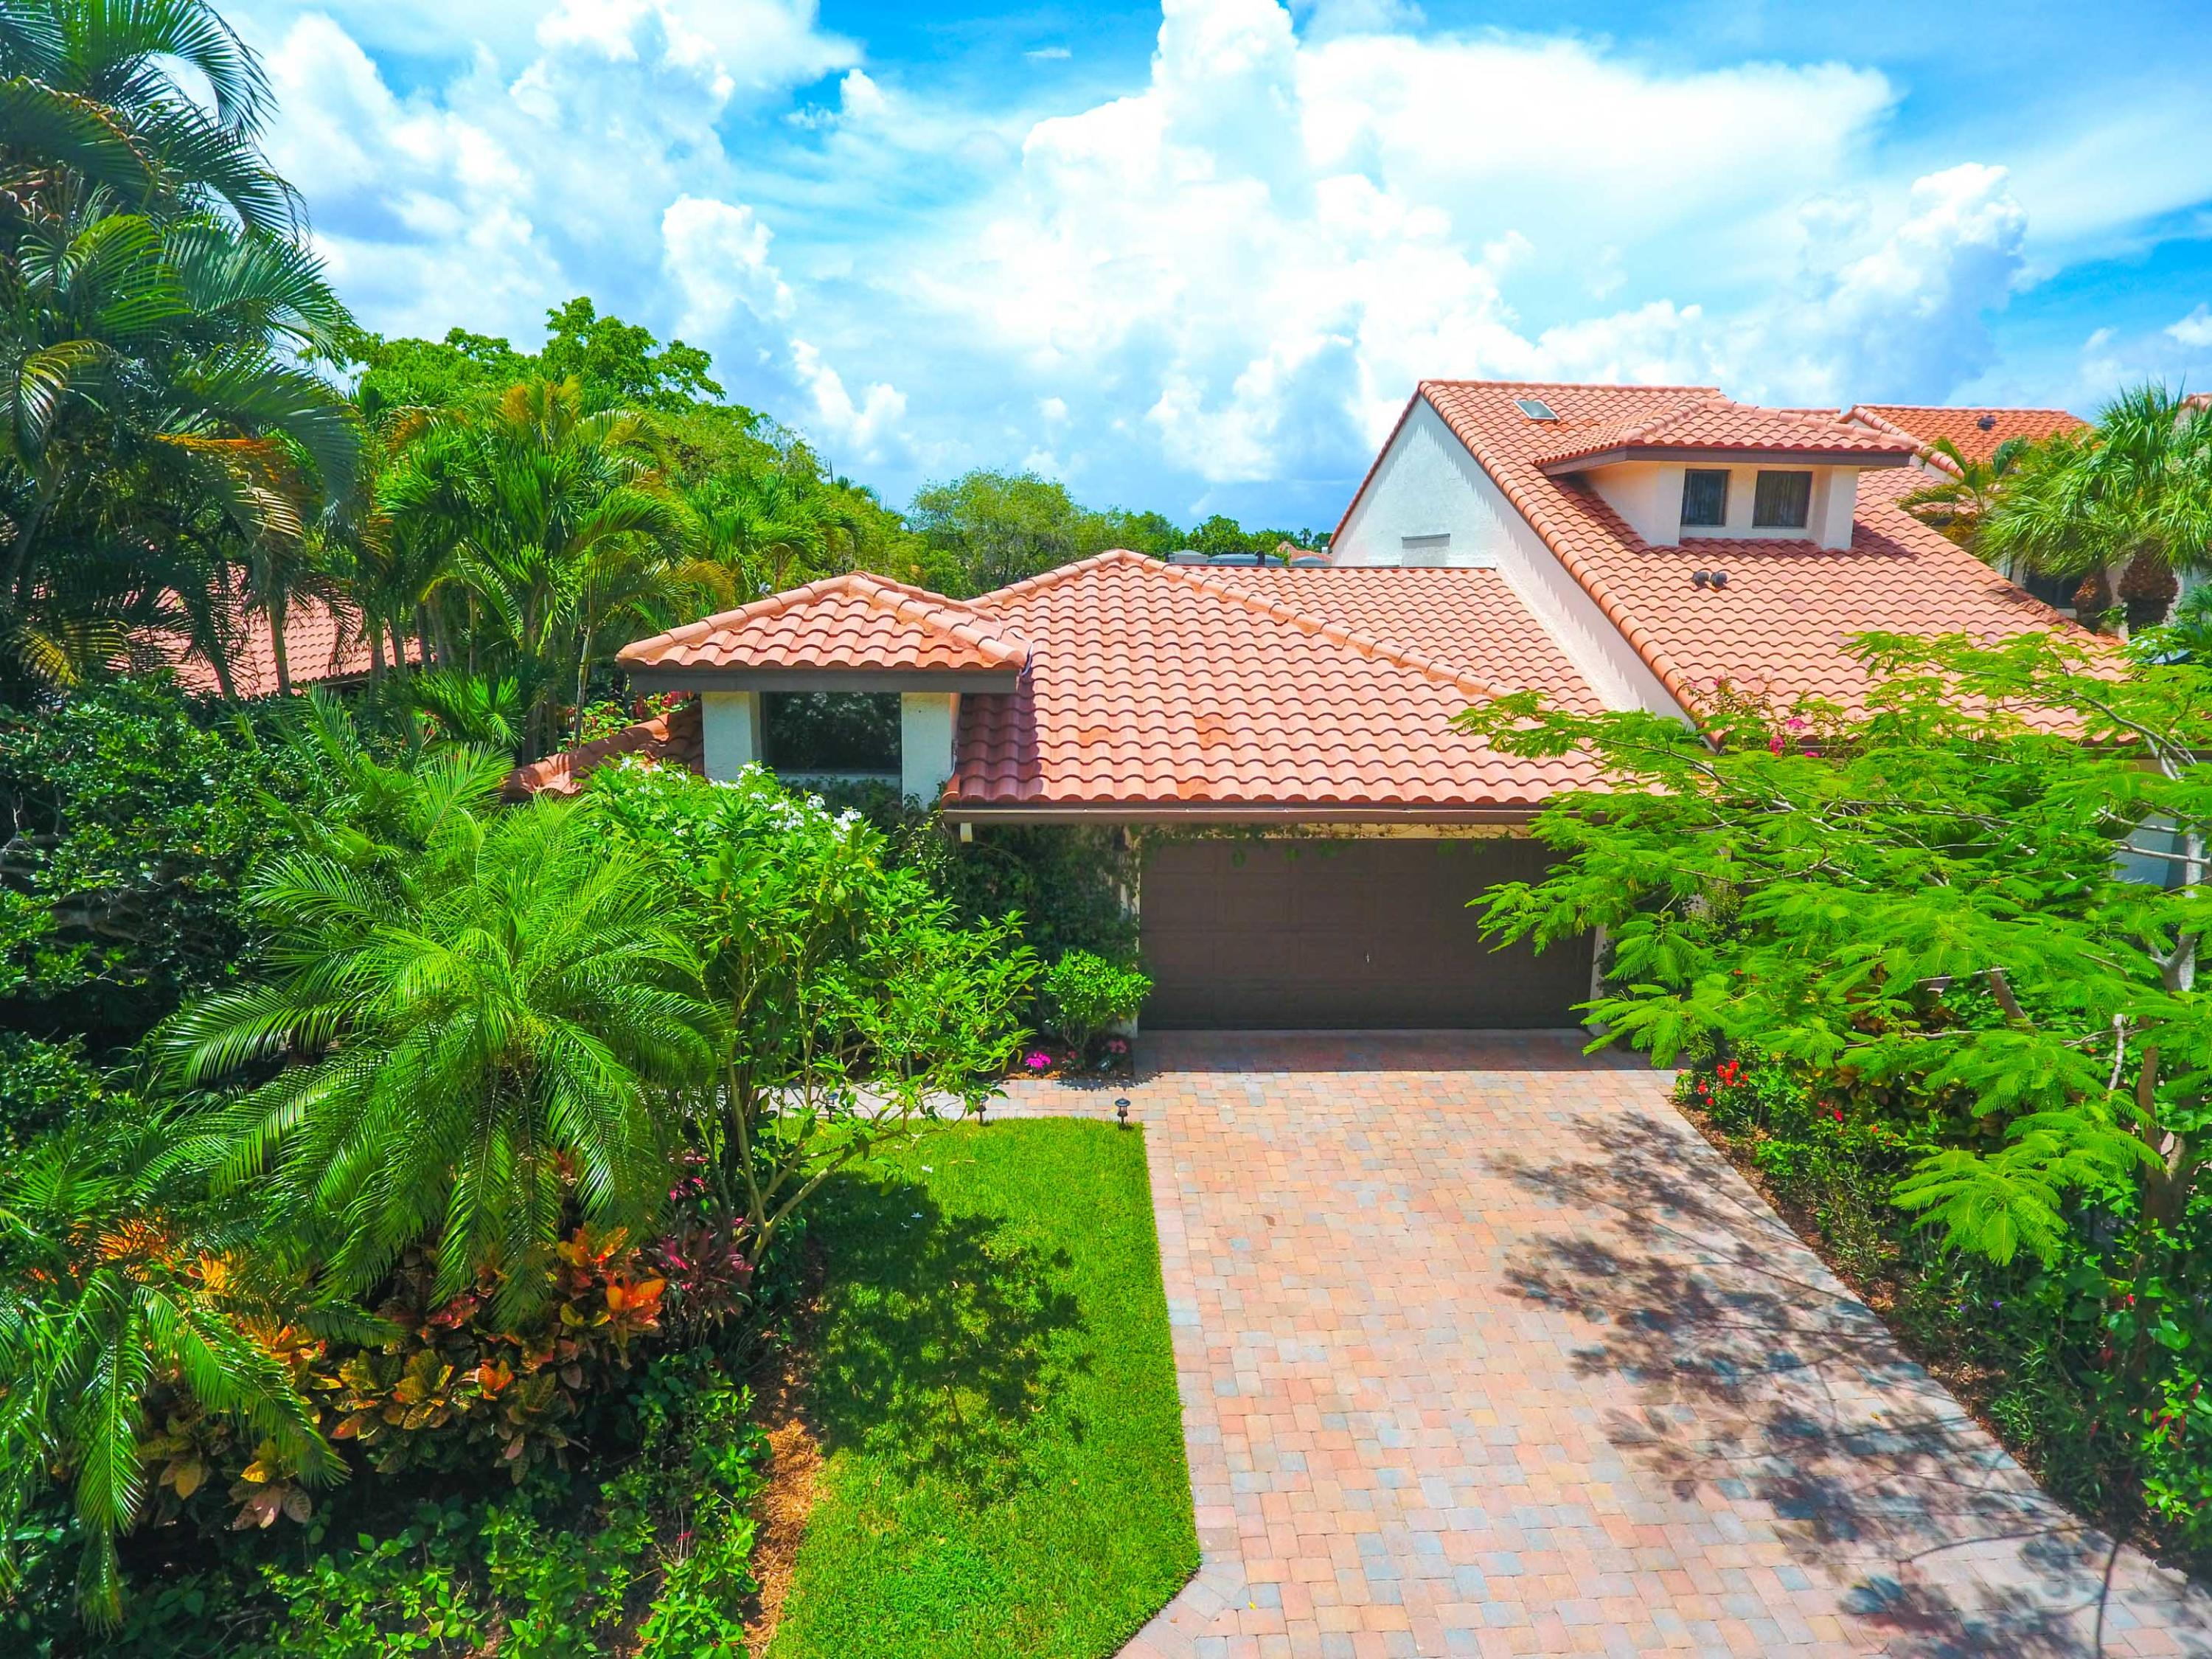 2387 Windsor Way Court, Wellington, Florida 33414, 3 Bedrooms Bedrooms, ,3 BathroomsBathrooms,Villa,For Rent,Palm Beach Polo and Country Club,Windsor Way,1,RX-10519552